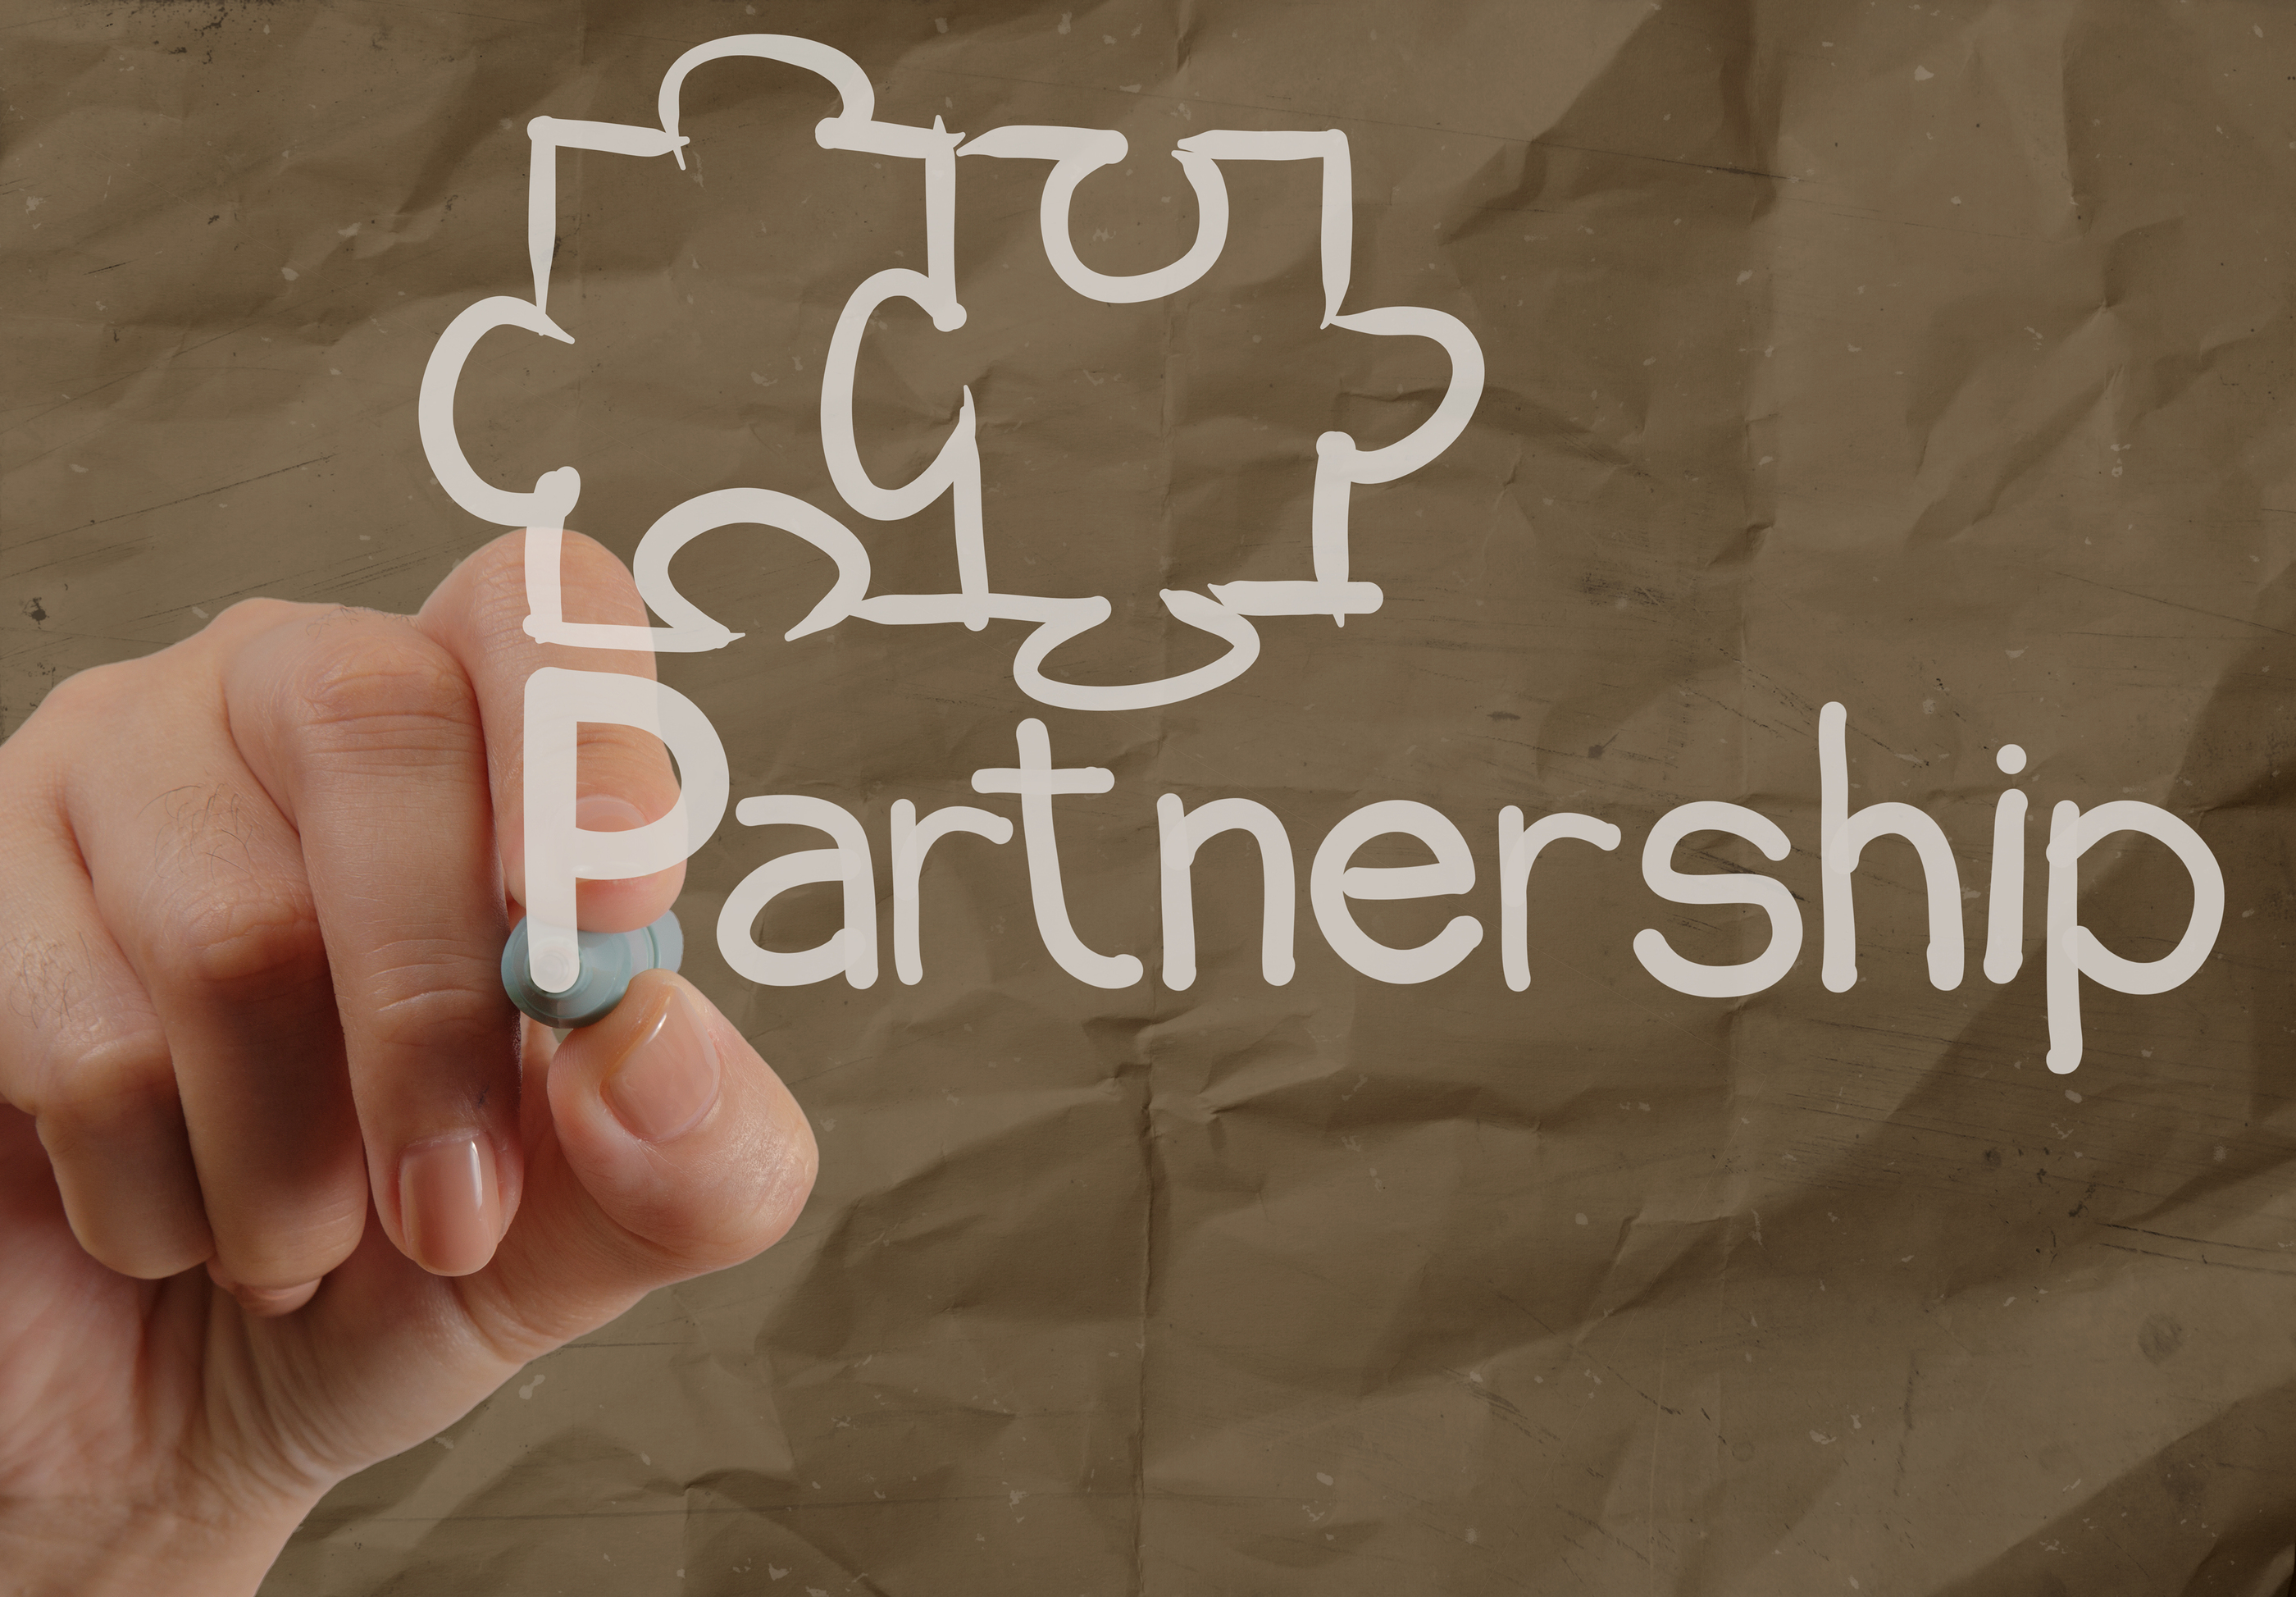 Hand Drawing Partnership Puzzle With Crumpled Recycle Paper Background.jpg